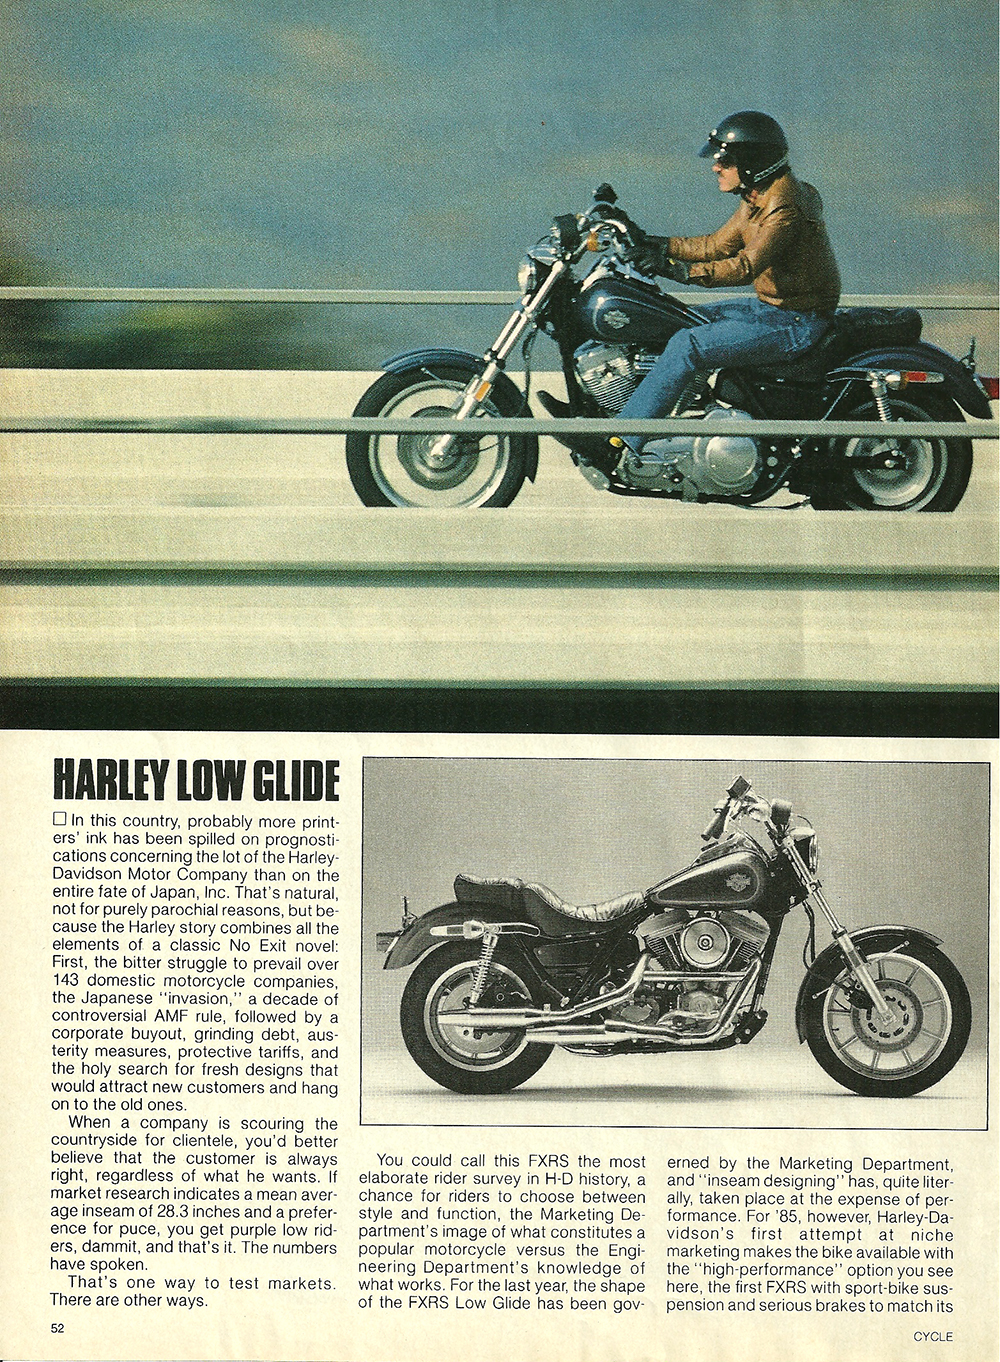 1984 Harley-Davidson Low Glide FXRS road test 3.jpg